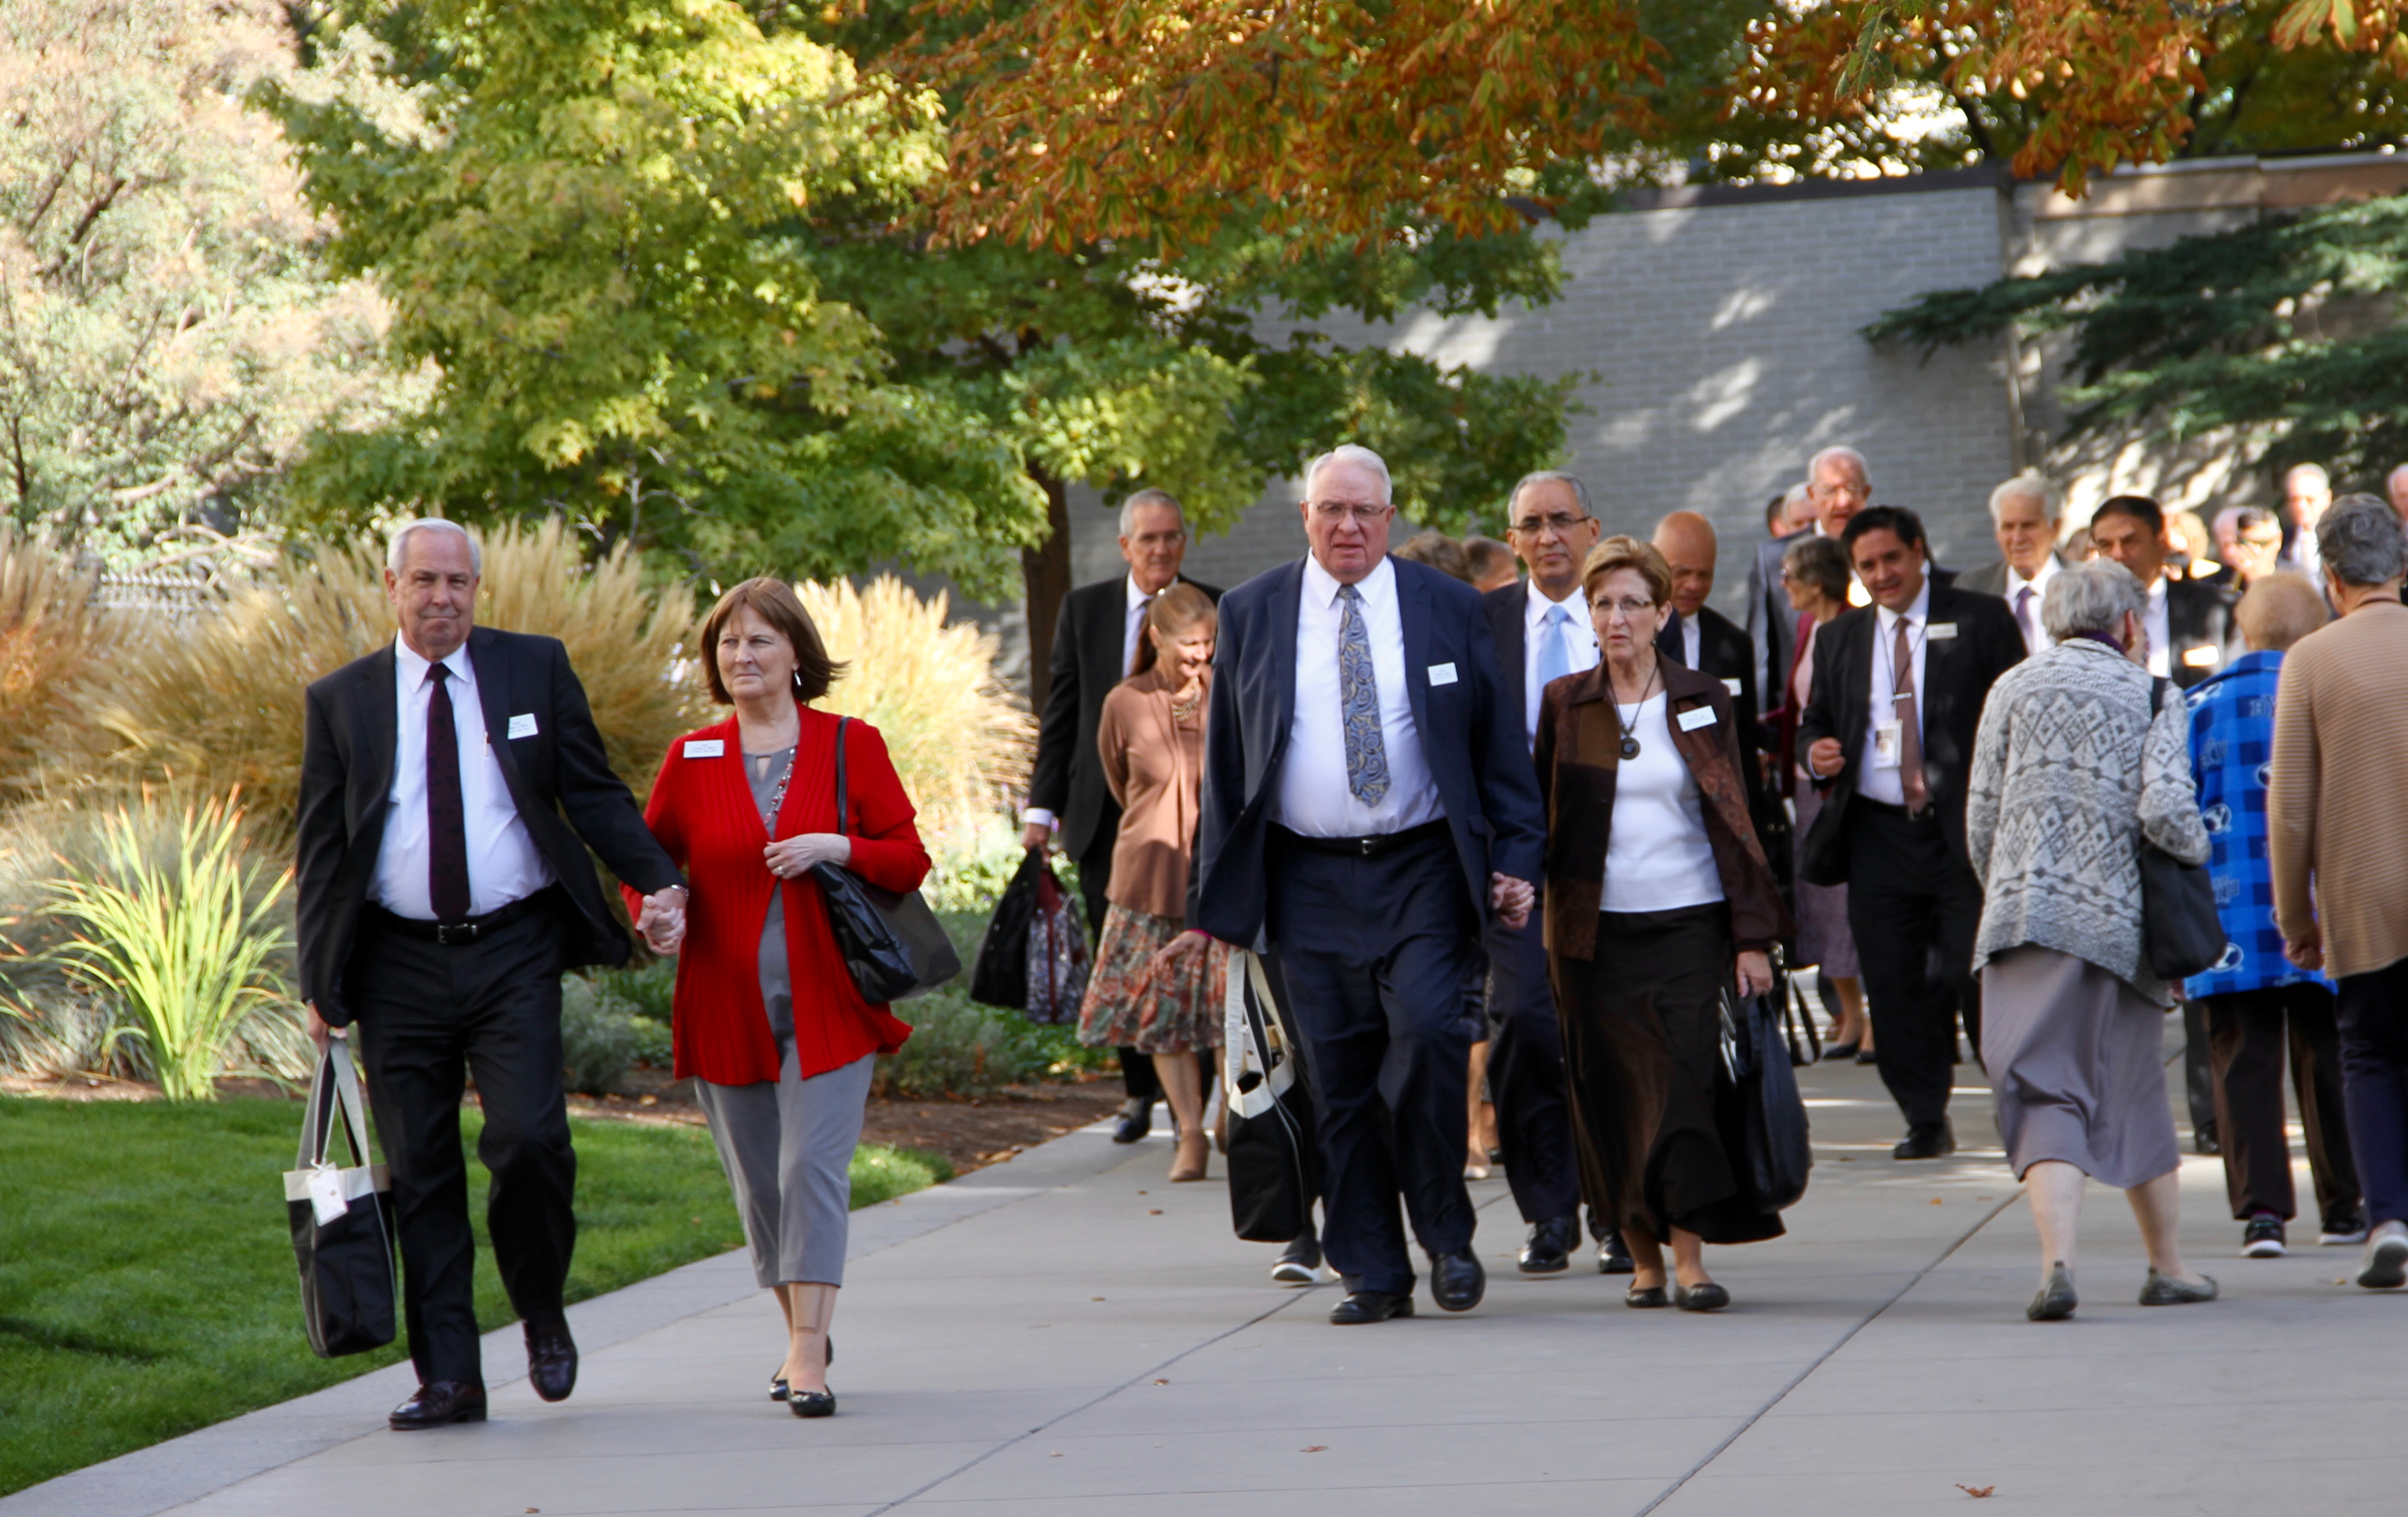 Recently called temple presidents and temple matrons attending the 2019 Temple Leadership Seminar walk through Temple Square on Tuesday, Oct. 15, 2019, in Salt Lake City.